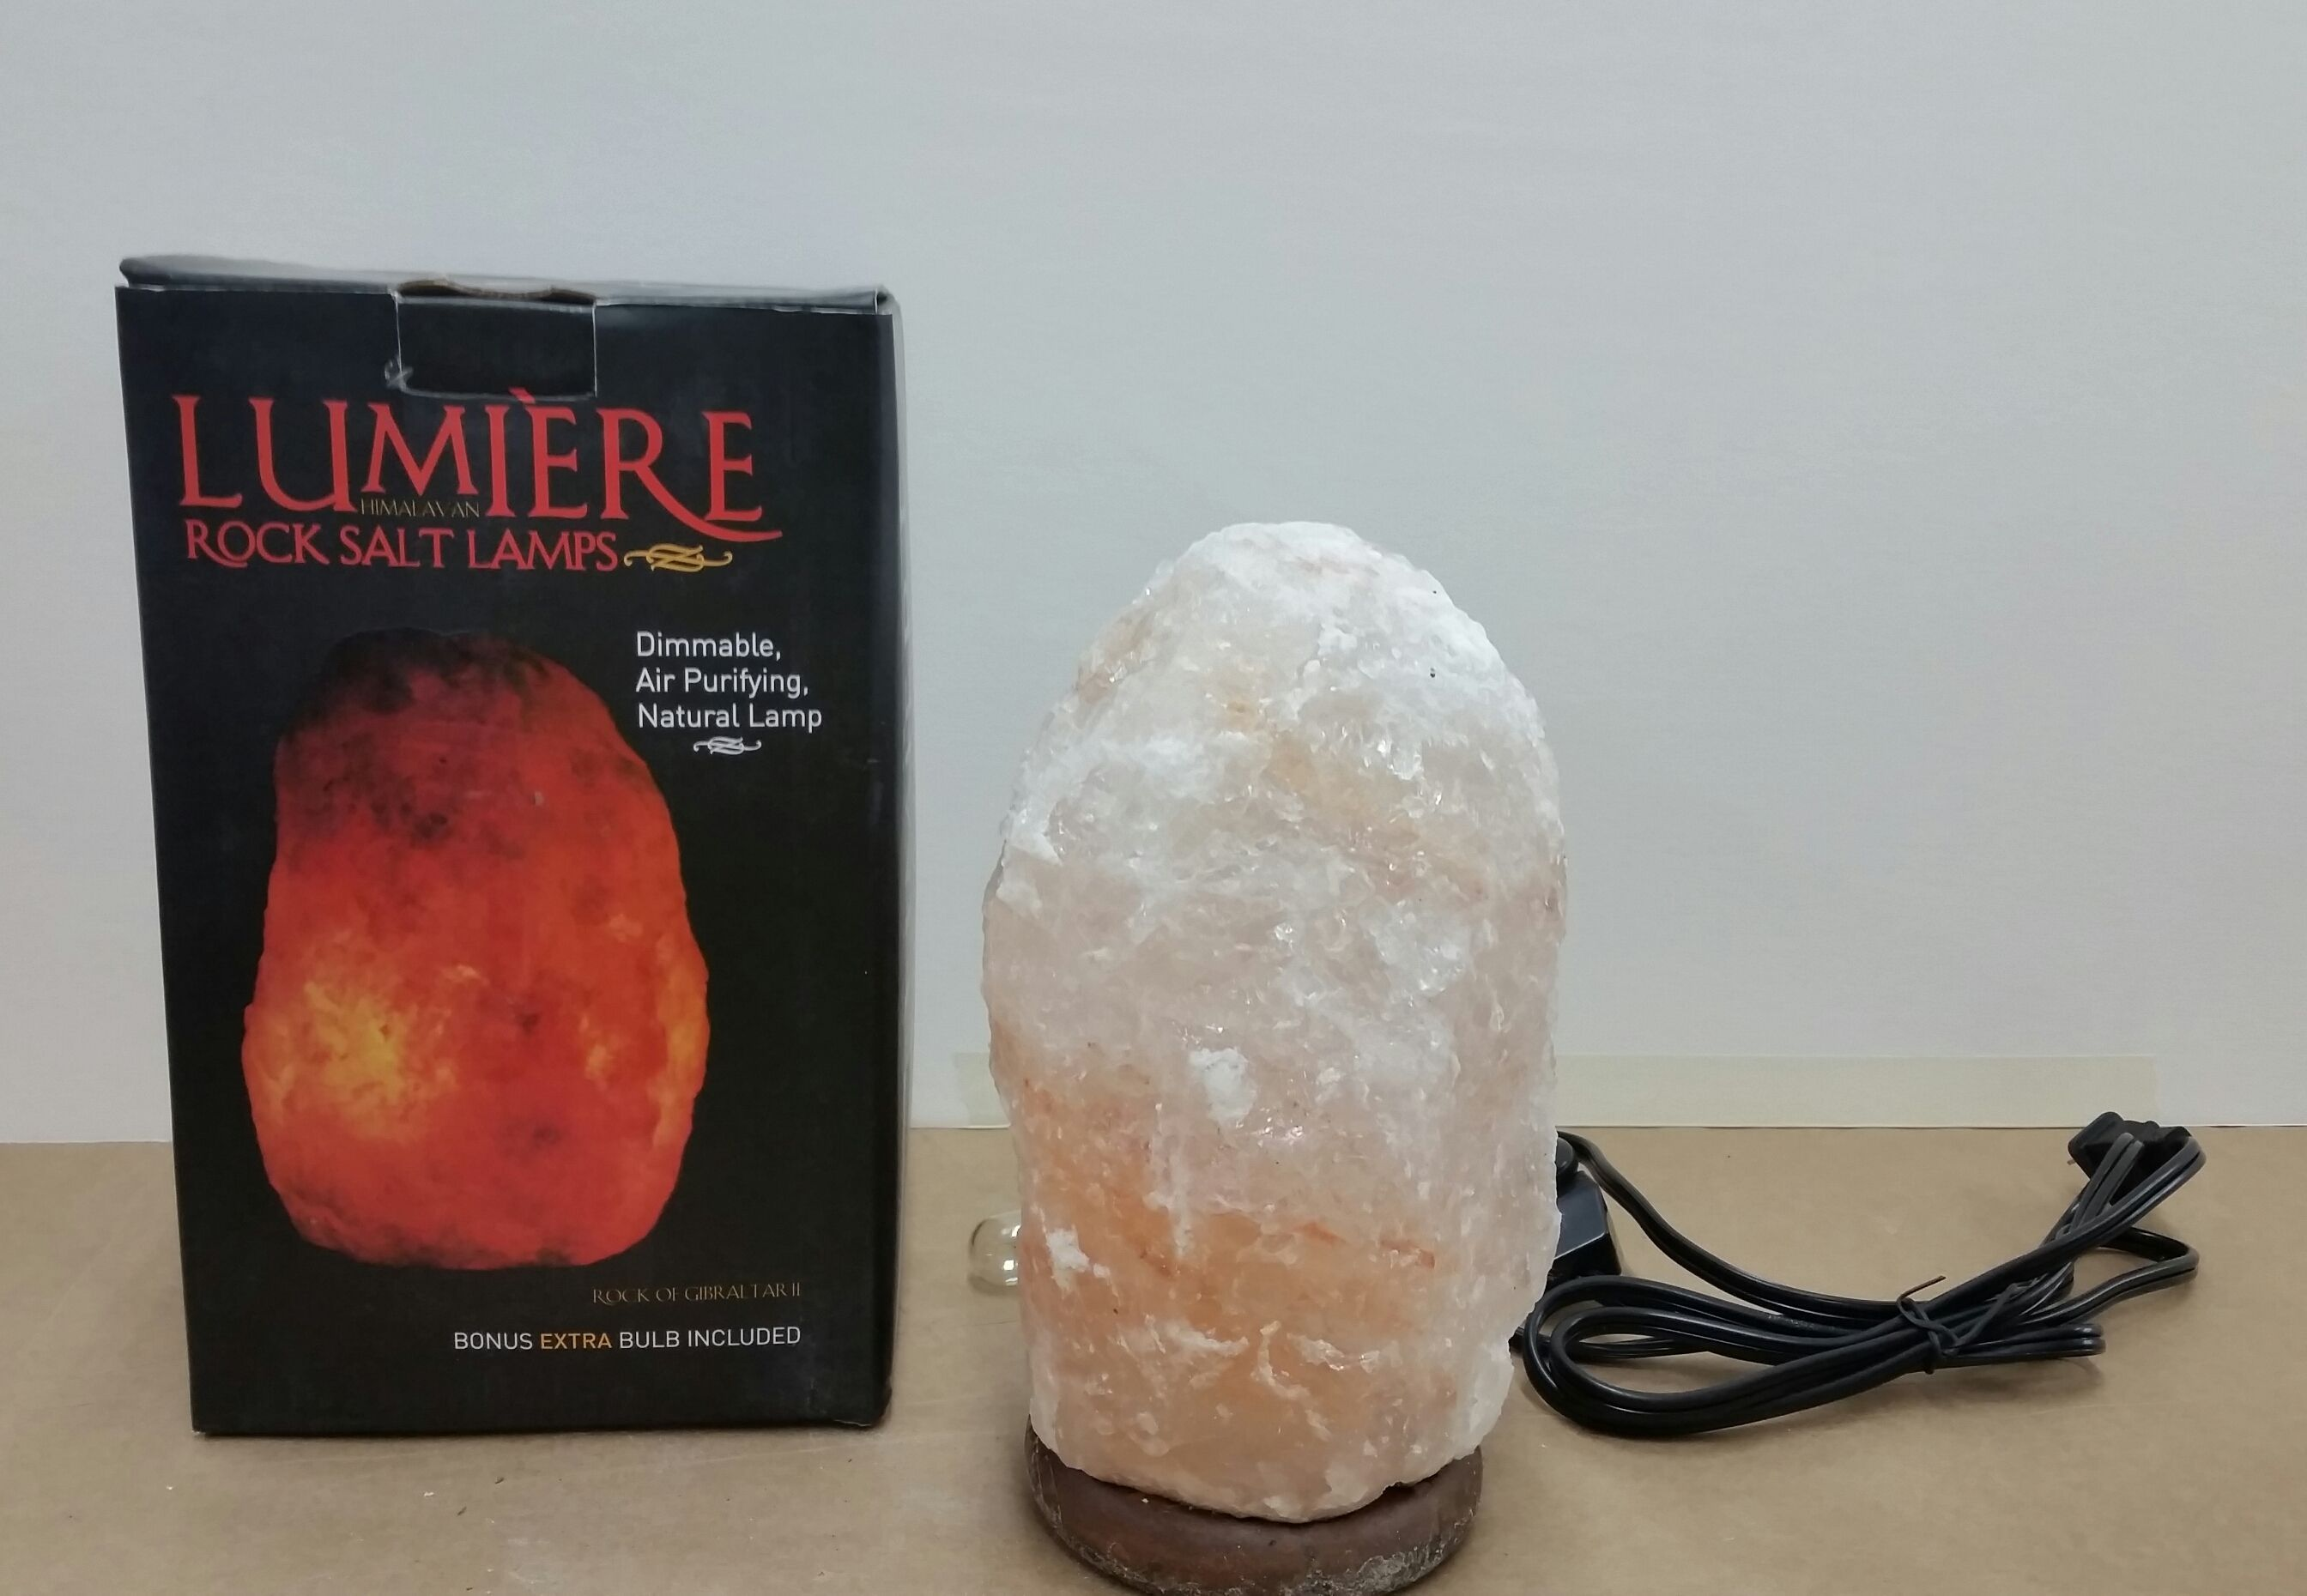 Himalayan rock salt lamps, sold at Michaels and on Amazon, are being recalled.